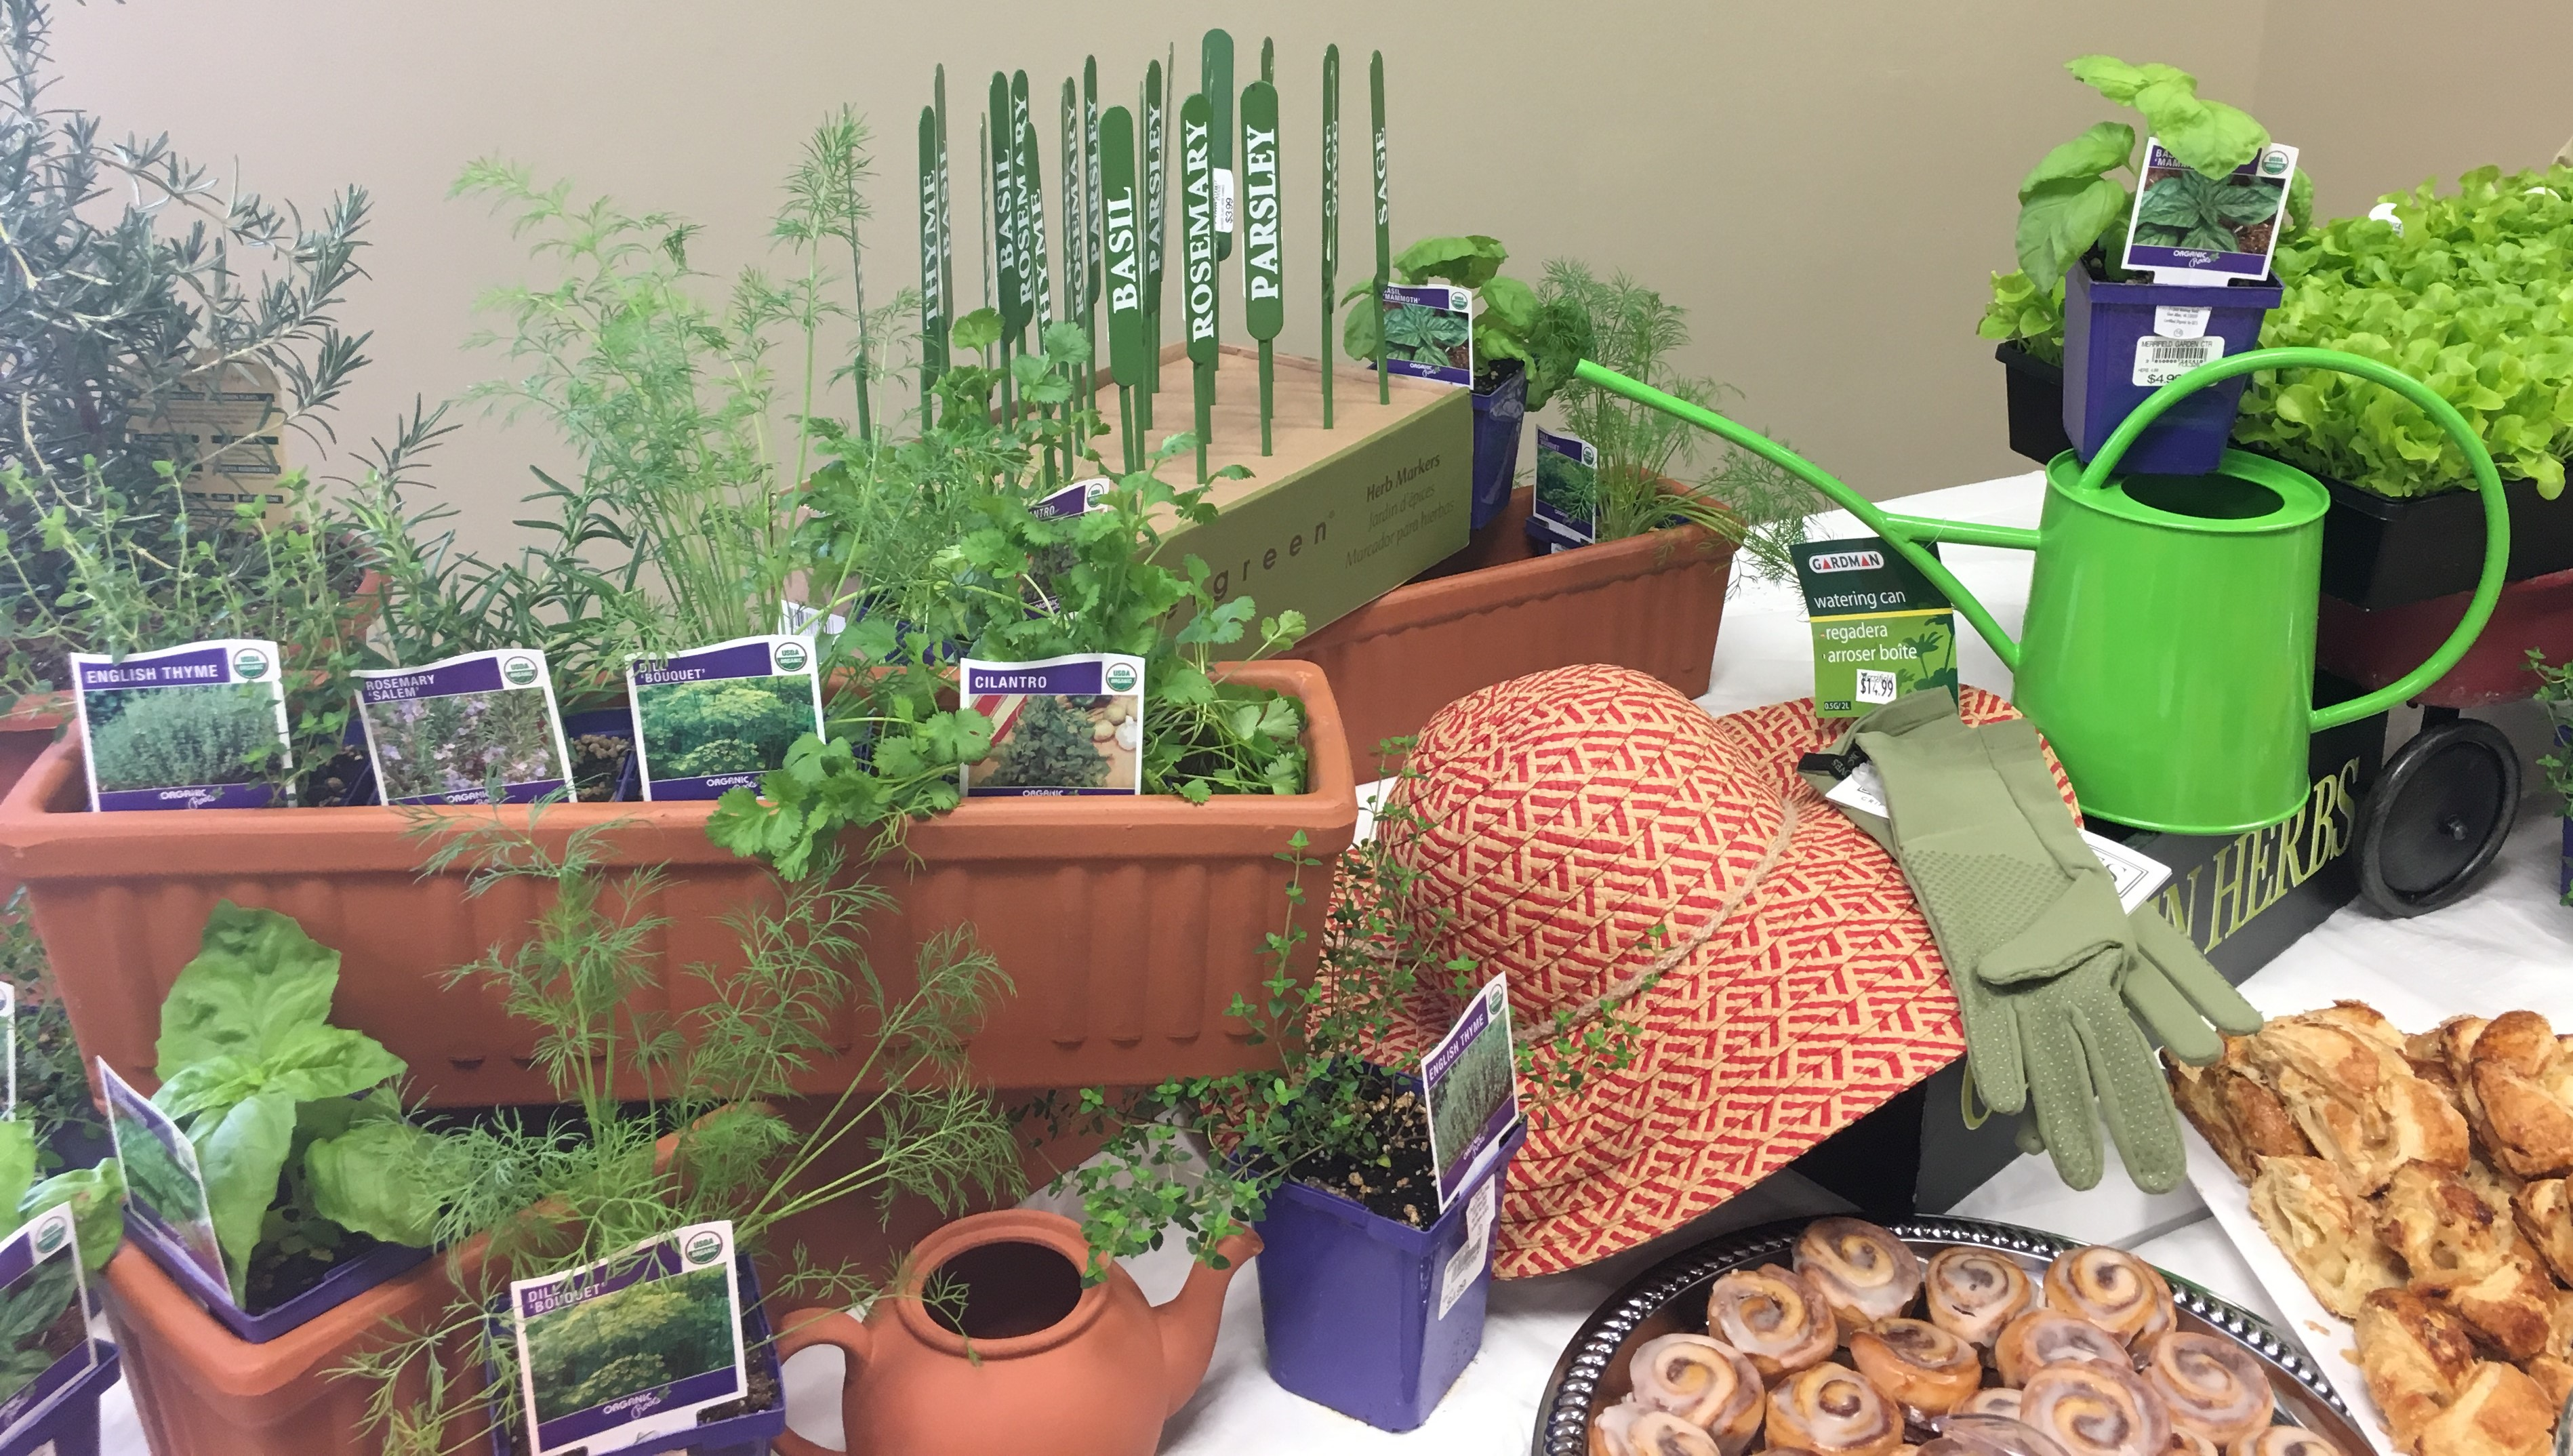 Yesterday I Attended Merrifield Garden Centeru0027s Free Lecture On Herbs And  Was Pleasantly Surprised By The Great Speaker And The Event Itself: Part ...